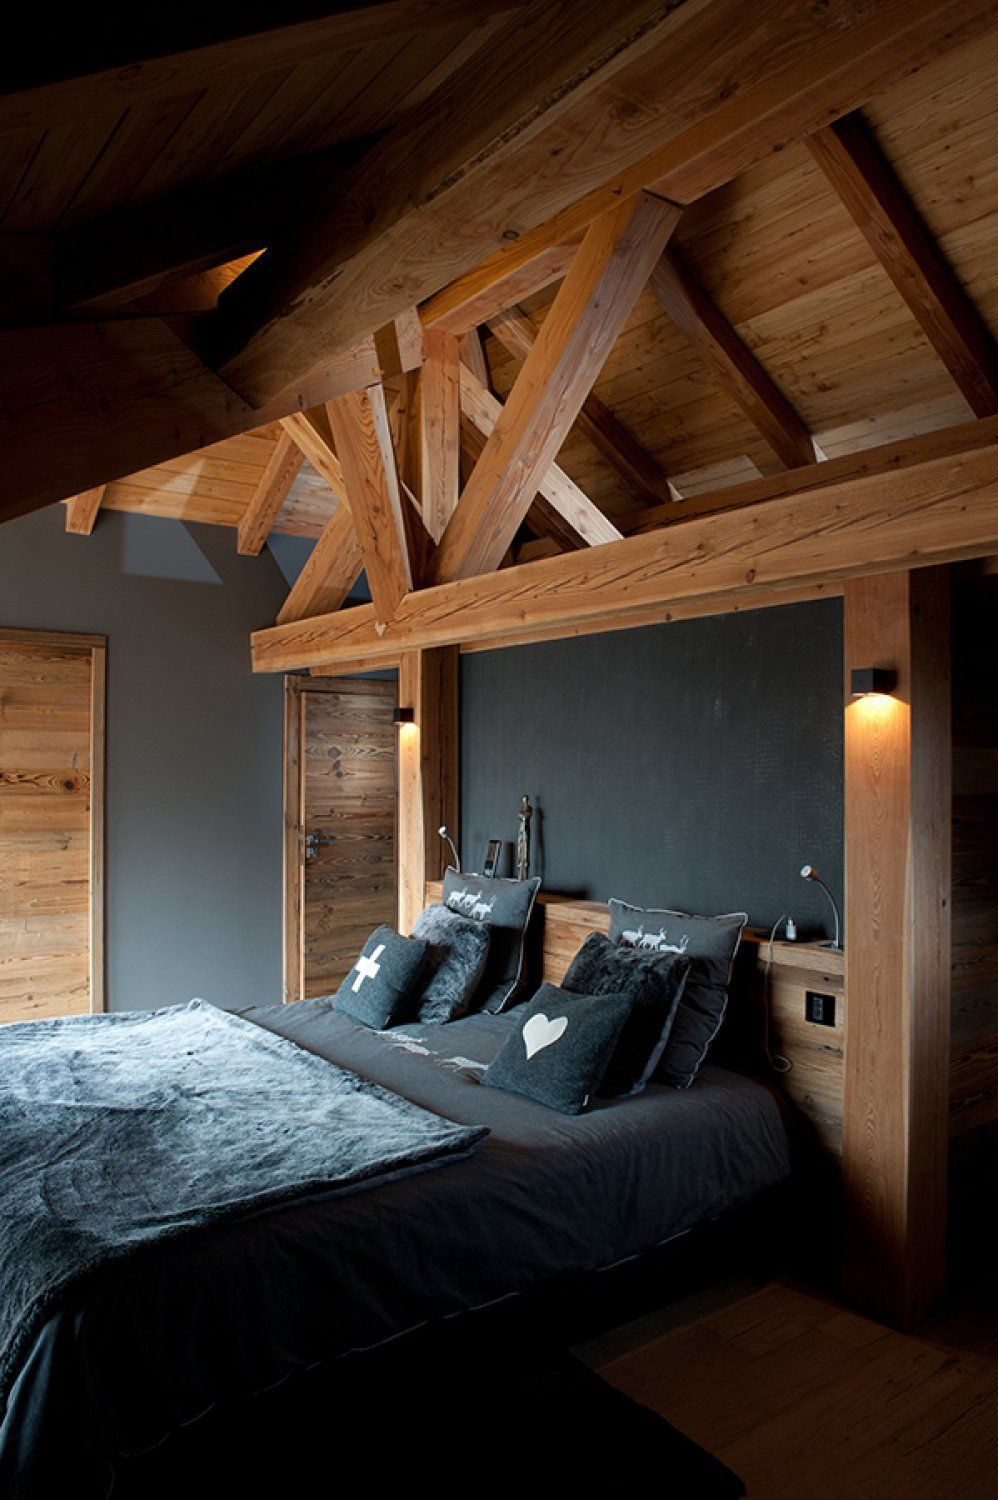 photo de chalets maisons ossature bois et architecture d. Black Bedroom Furniture Sets. Home Design Ideas